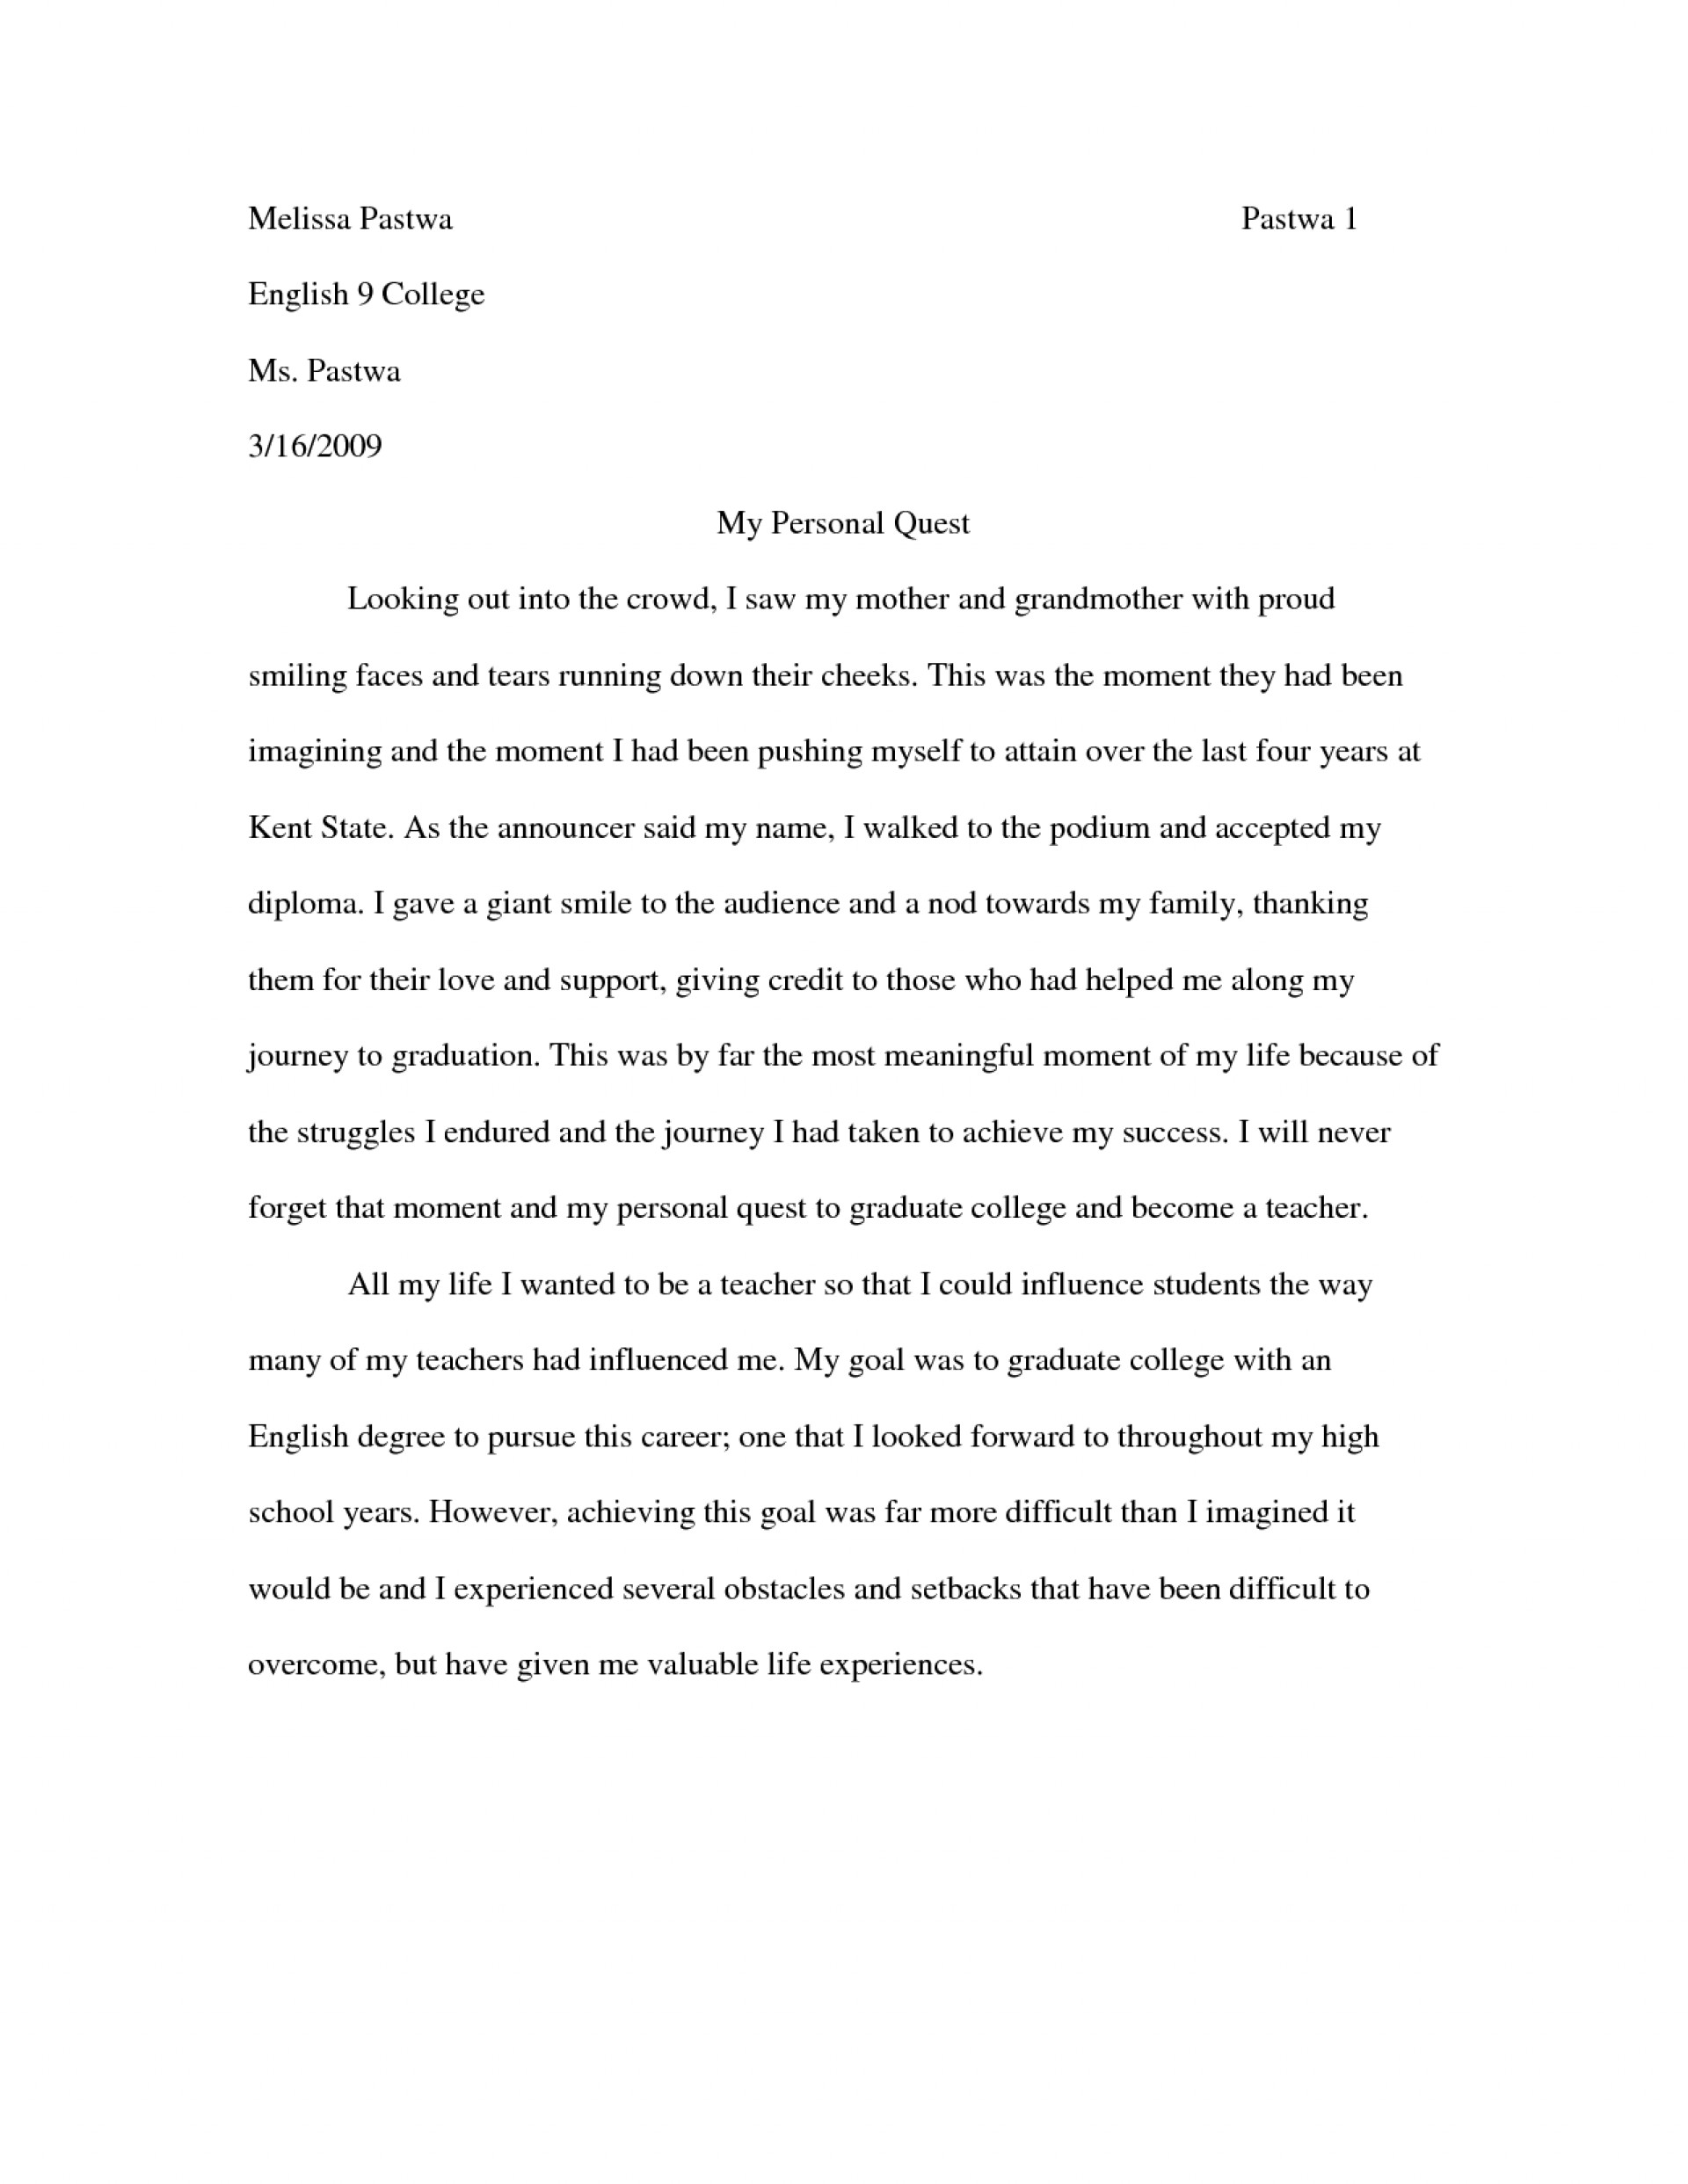 009 Writing Narrative Essay Example Dialogue Of L Amazing A About Being Judged Quizlet Powerpoint 1920